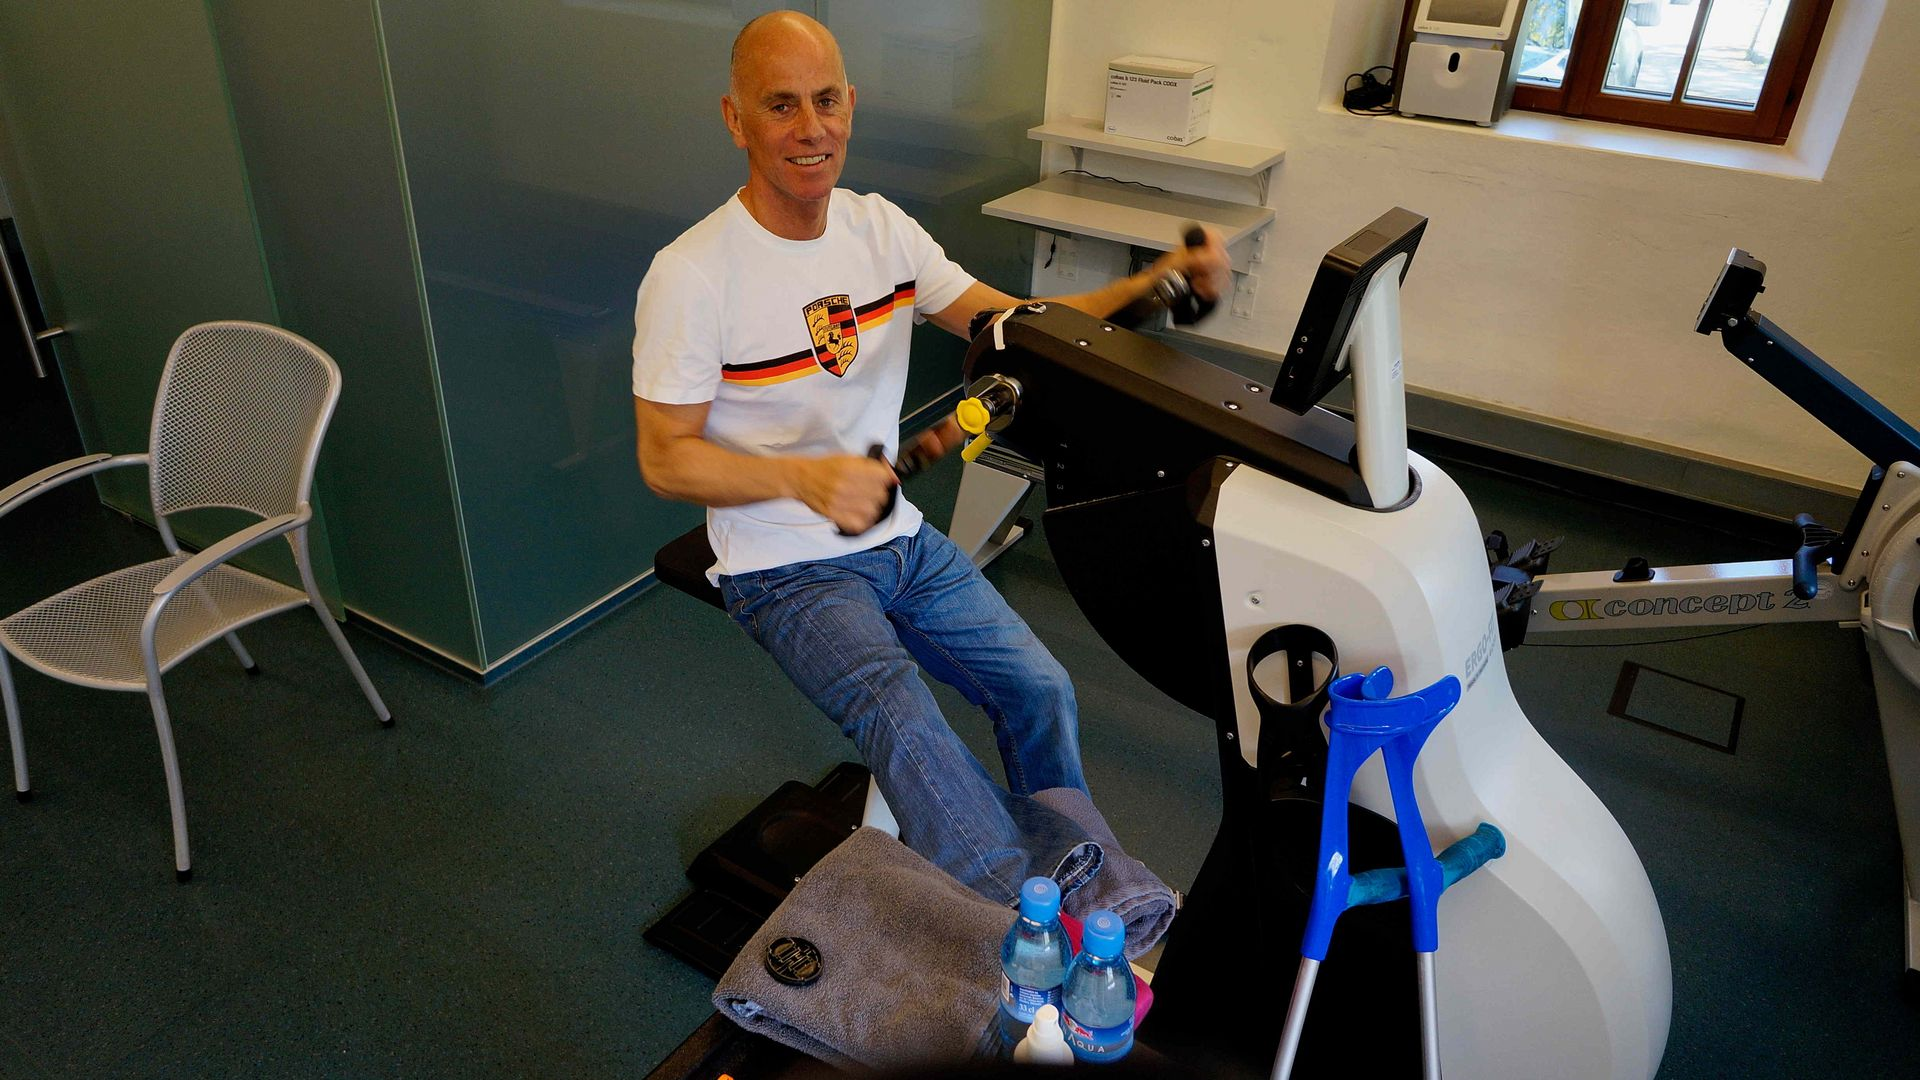 Second-hand ergometer test after the accident: +35% increase in strength!